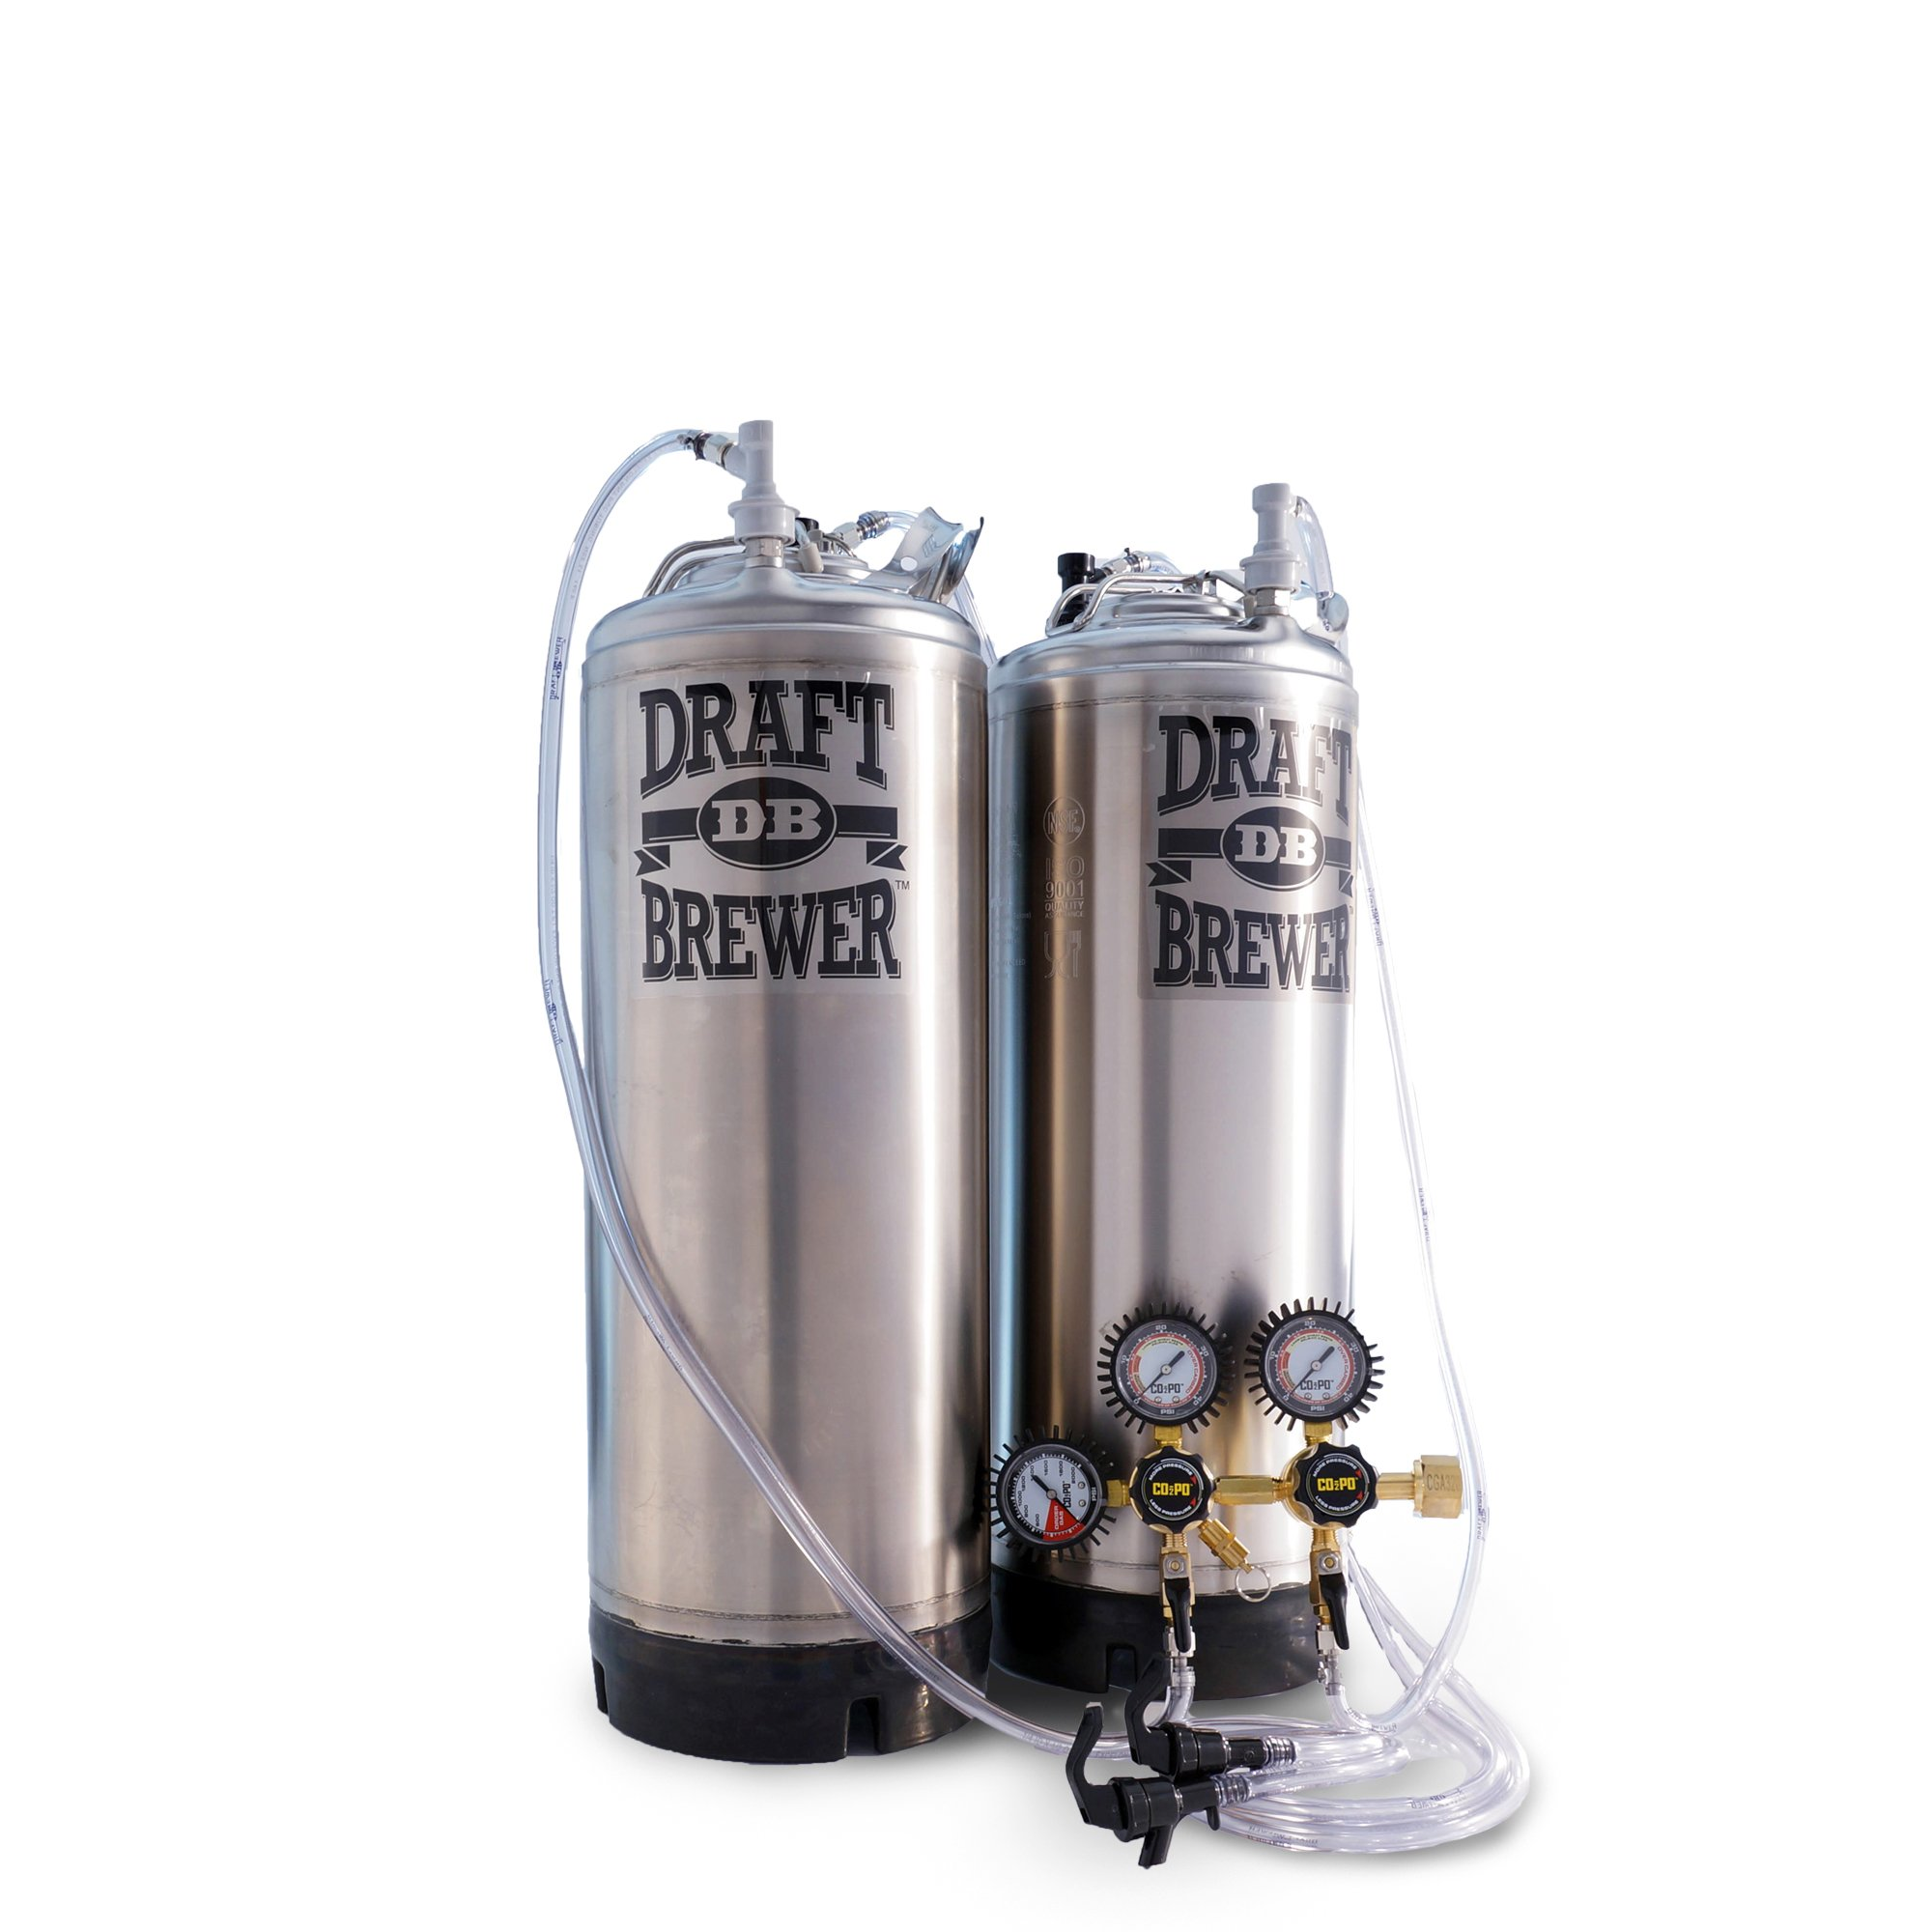 Draft Brewer Flex Homebrew Kegging System for Home Brew Beer - 2 New Ball Lock Kegs w/ Double Body CO2 Regulator